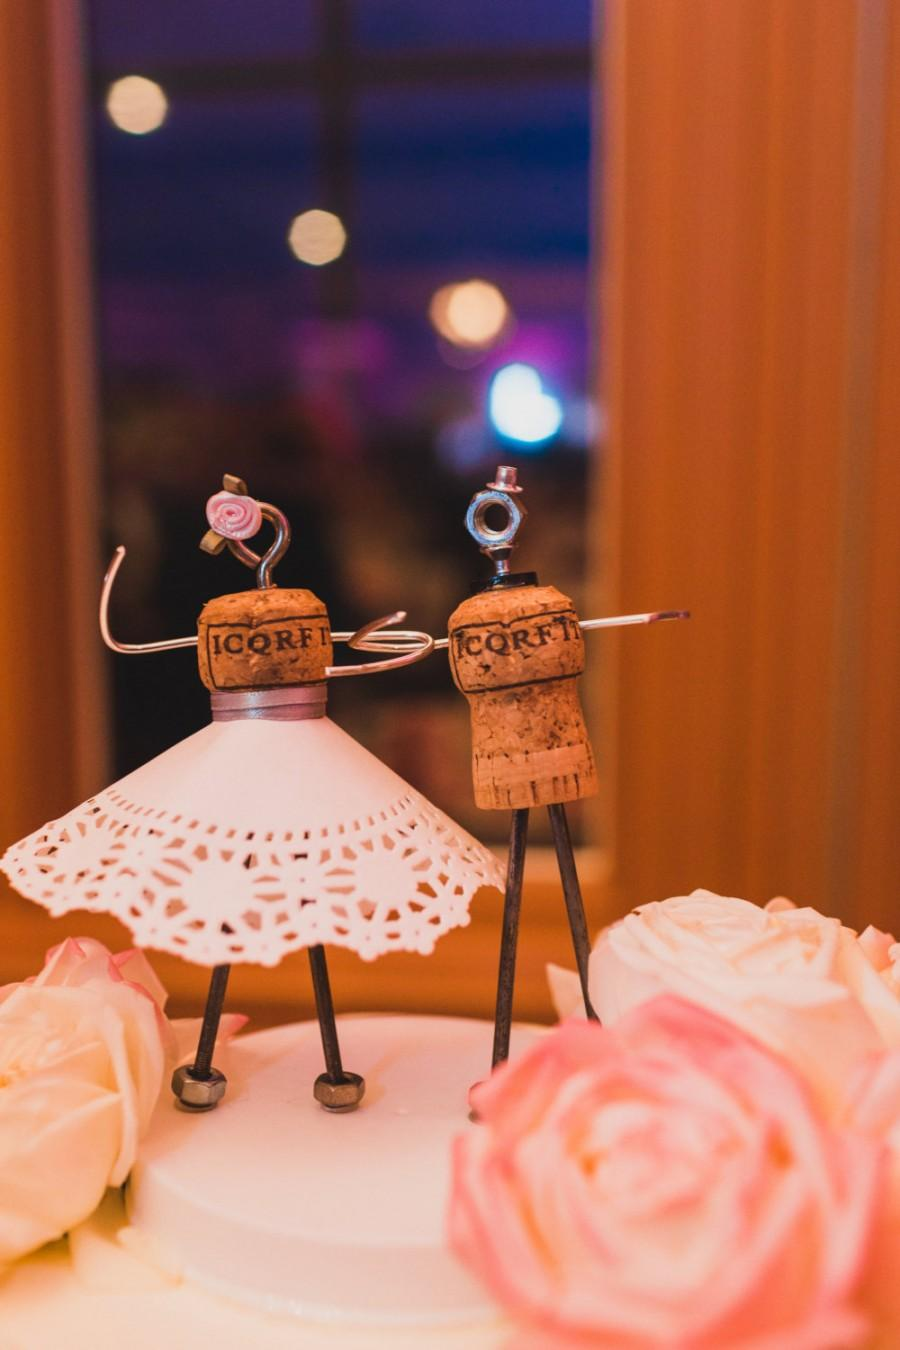 Wedding - Champagne Cork Cake Topper (Weddings, Engagement Parties, Bridal Showers, Rehearsal Dinners, etc!)